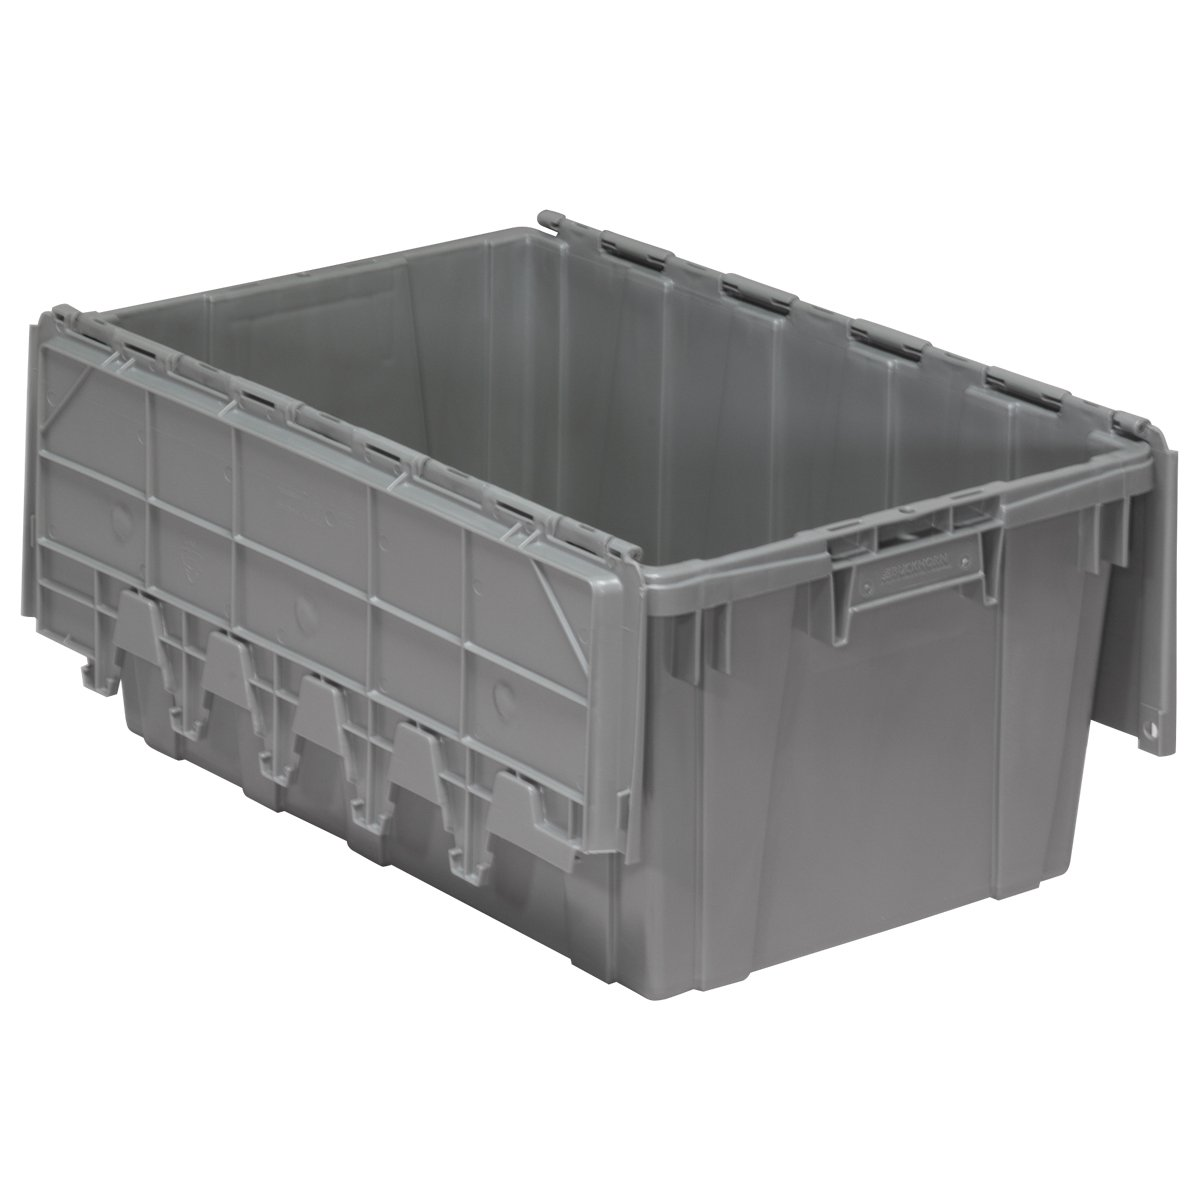 Akro-Mils 39160 Plastic Storage and Distribution Container Tote with Hinged Lid, 27-Inch L by 17-Inch W by 12.5-Inch H, Grey